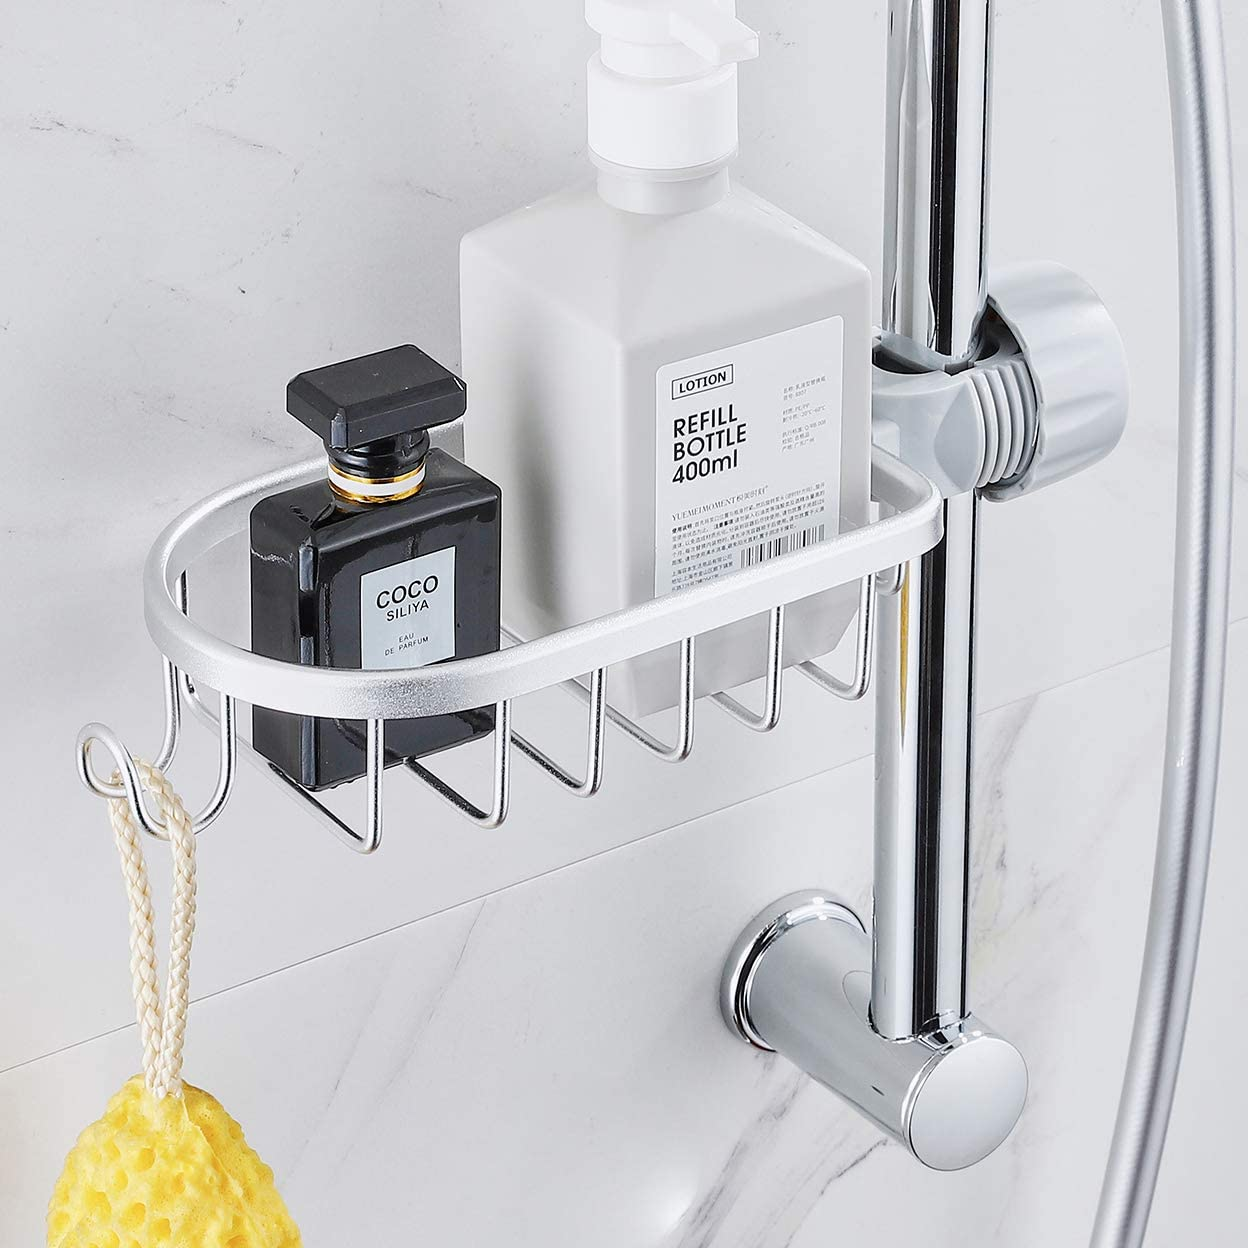 Faucet Shower Rod Assembled Kitchen Washing Sponge Holder Shower Soap Storage Basket